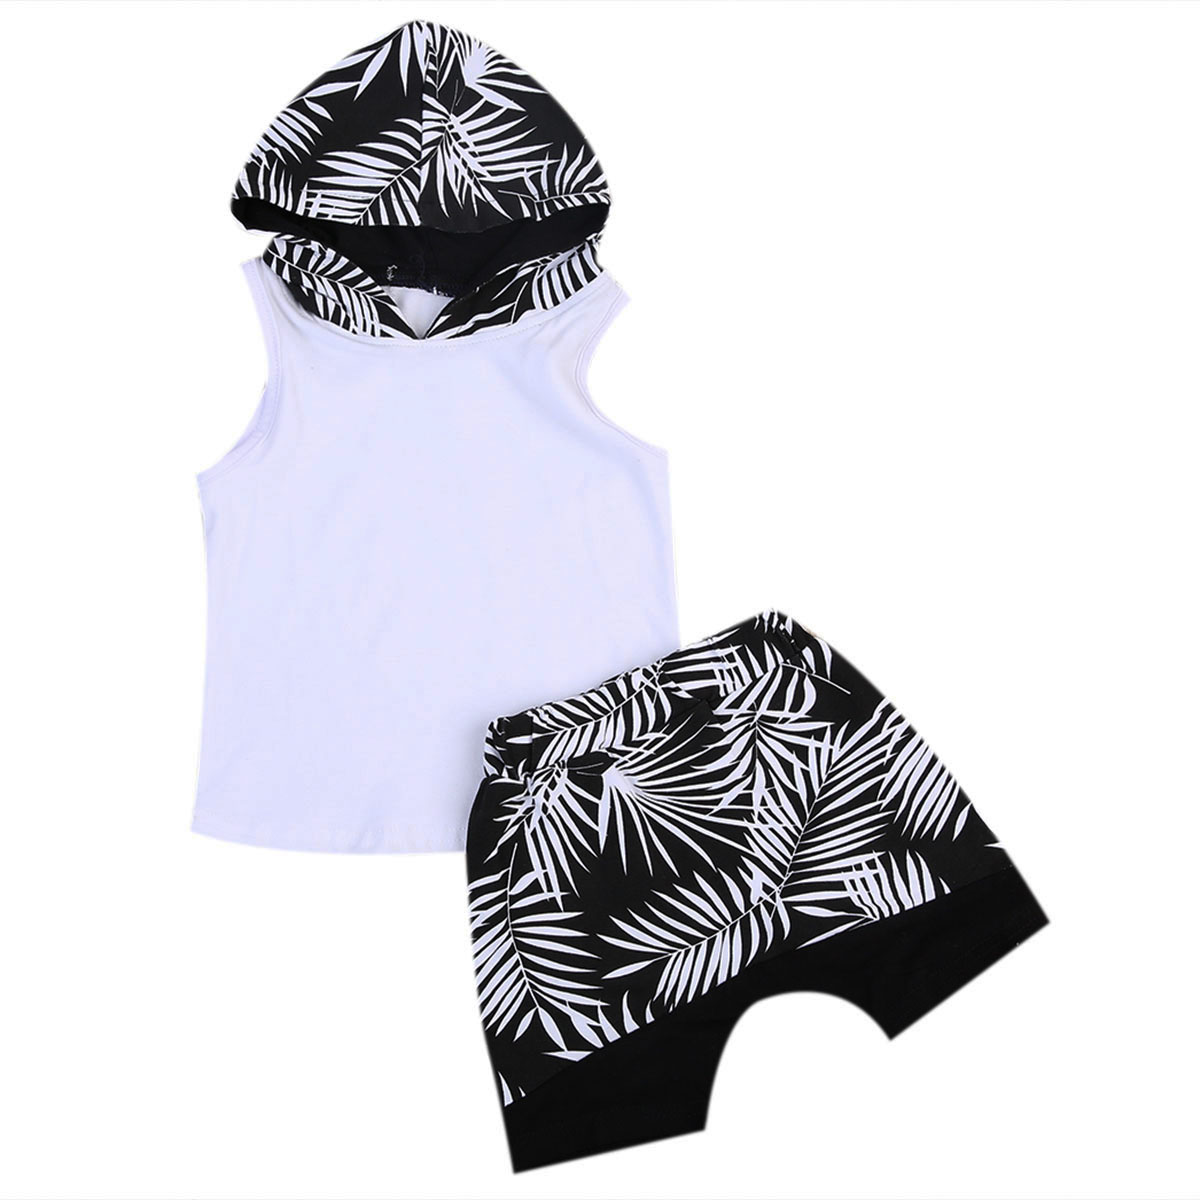 2017 Summer Children Boy Clothes Set Sleeveless Hooded Vest T-shirt Tops+Shorts Hot Pant 2PCS Toddler Kids Clothing 2017 new fashion kids clothes off shoulder camo crop tops hole jean denim pant 2pcs outfit summer suit children clothing set